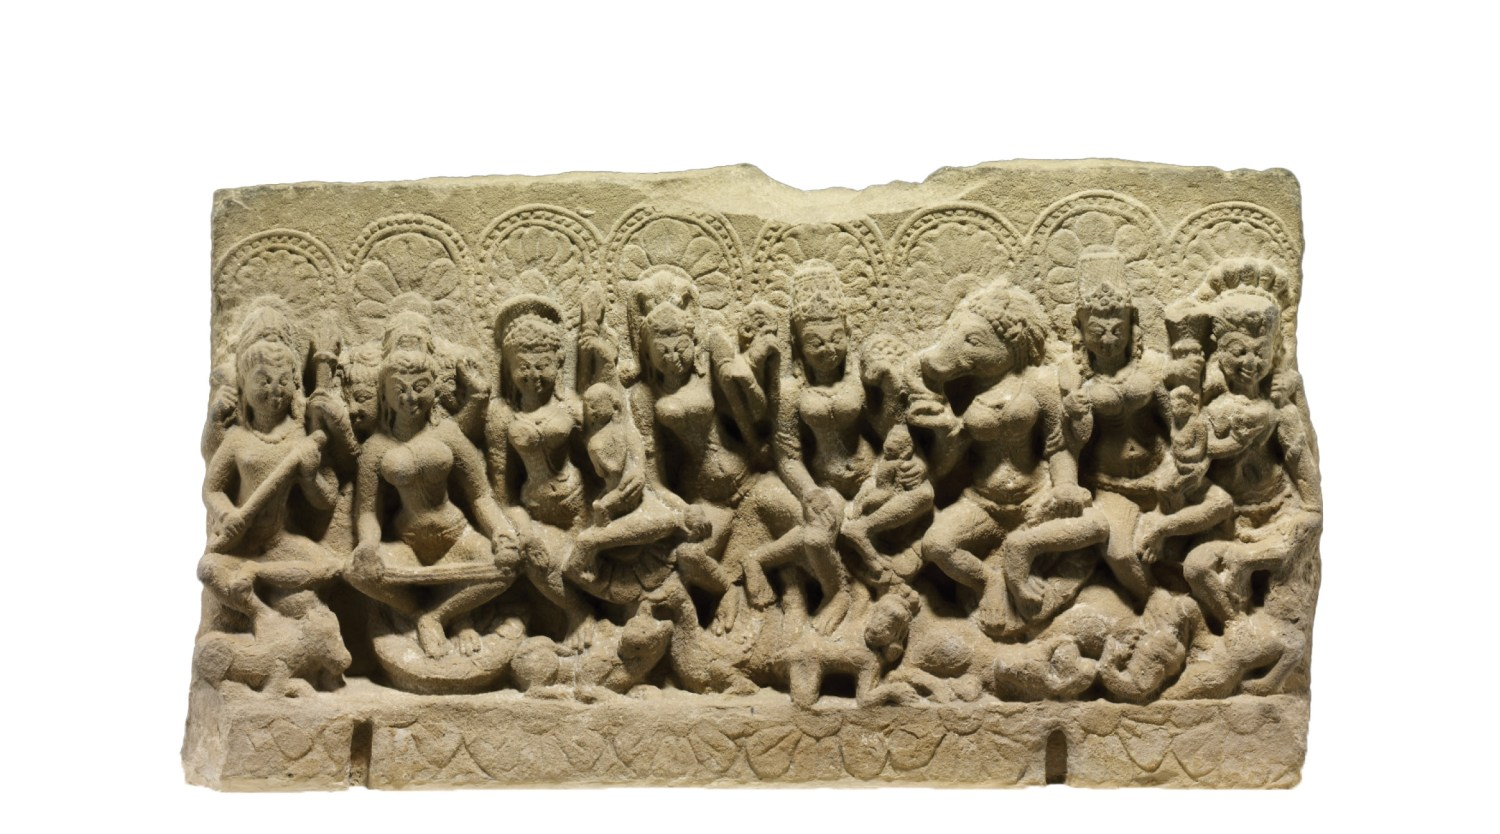 ABOVE Sculpted panel, possibly from a lintel above a temple door, showing the Sapta-Matrikas (Seven Mothers) accompanied by Shiva, from Madya Pradesh, Gurjara-Pratihara dynasty, 10th century. Sandstone. Size: 39.4 x 72